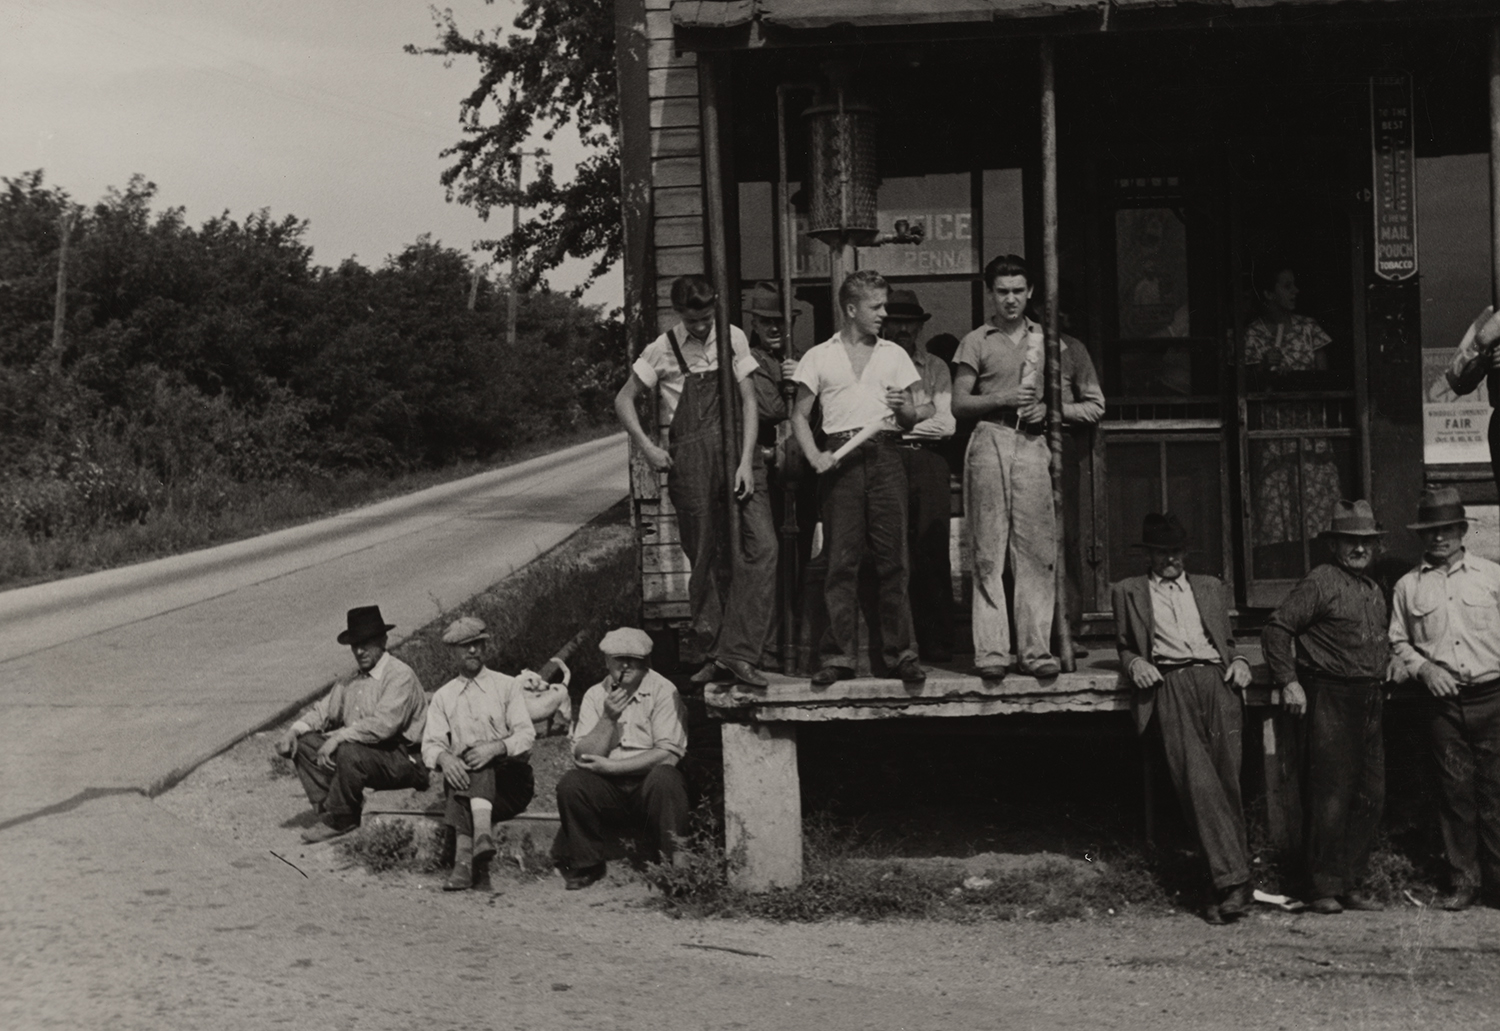 Prospective homesteaders, in front of post office at United, Westmoreland County, Pennsylvania, 1935.